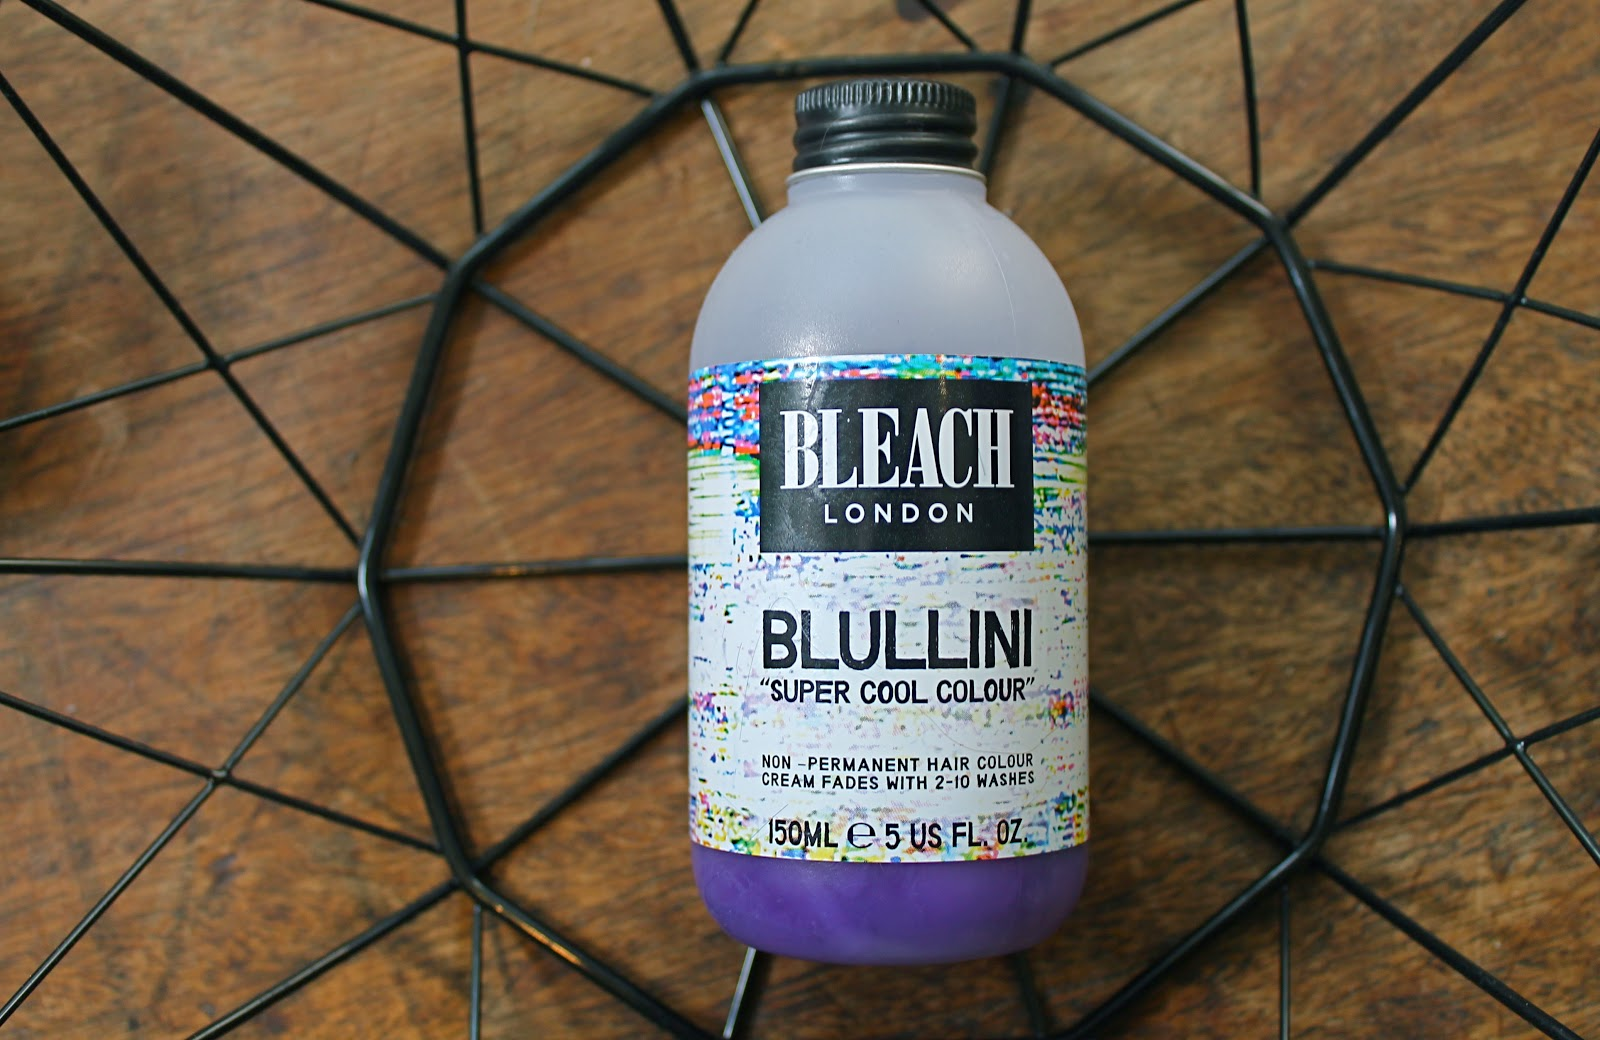 bleach London Blullini super cool colour uk beauty blogger